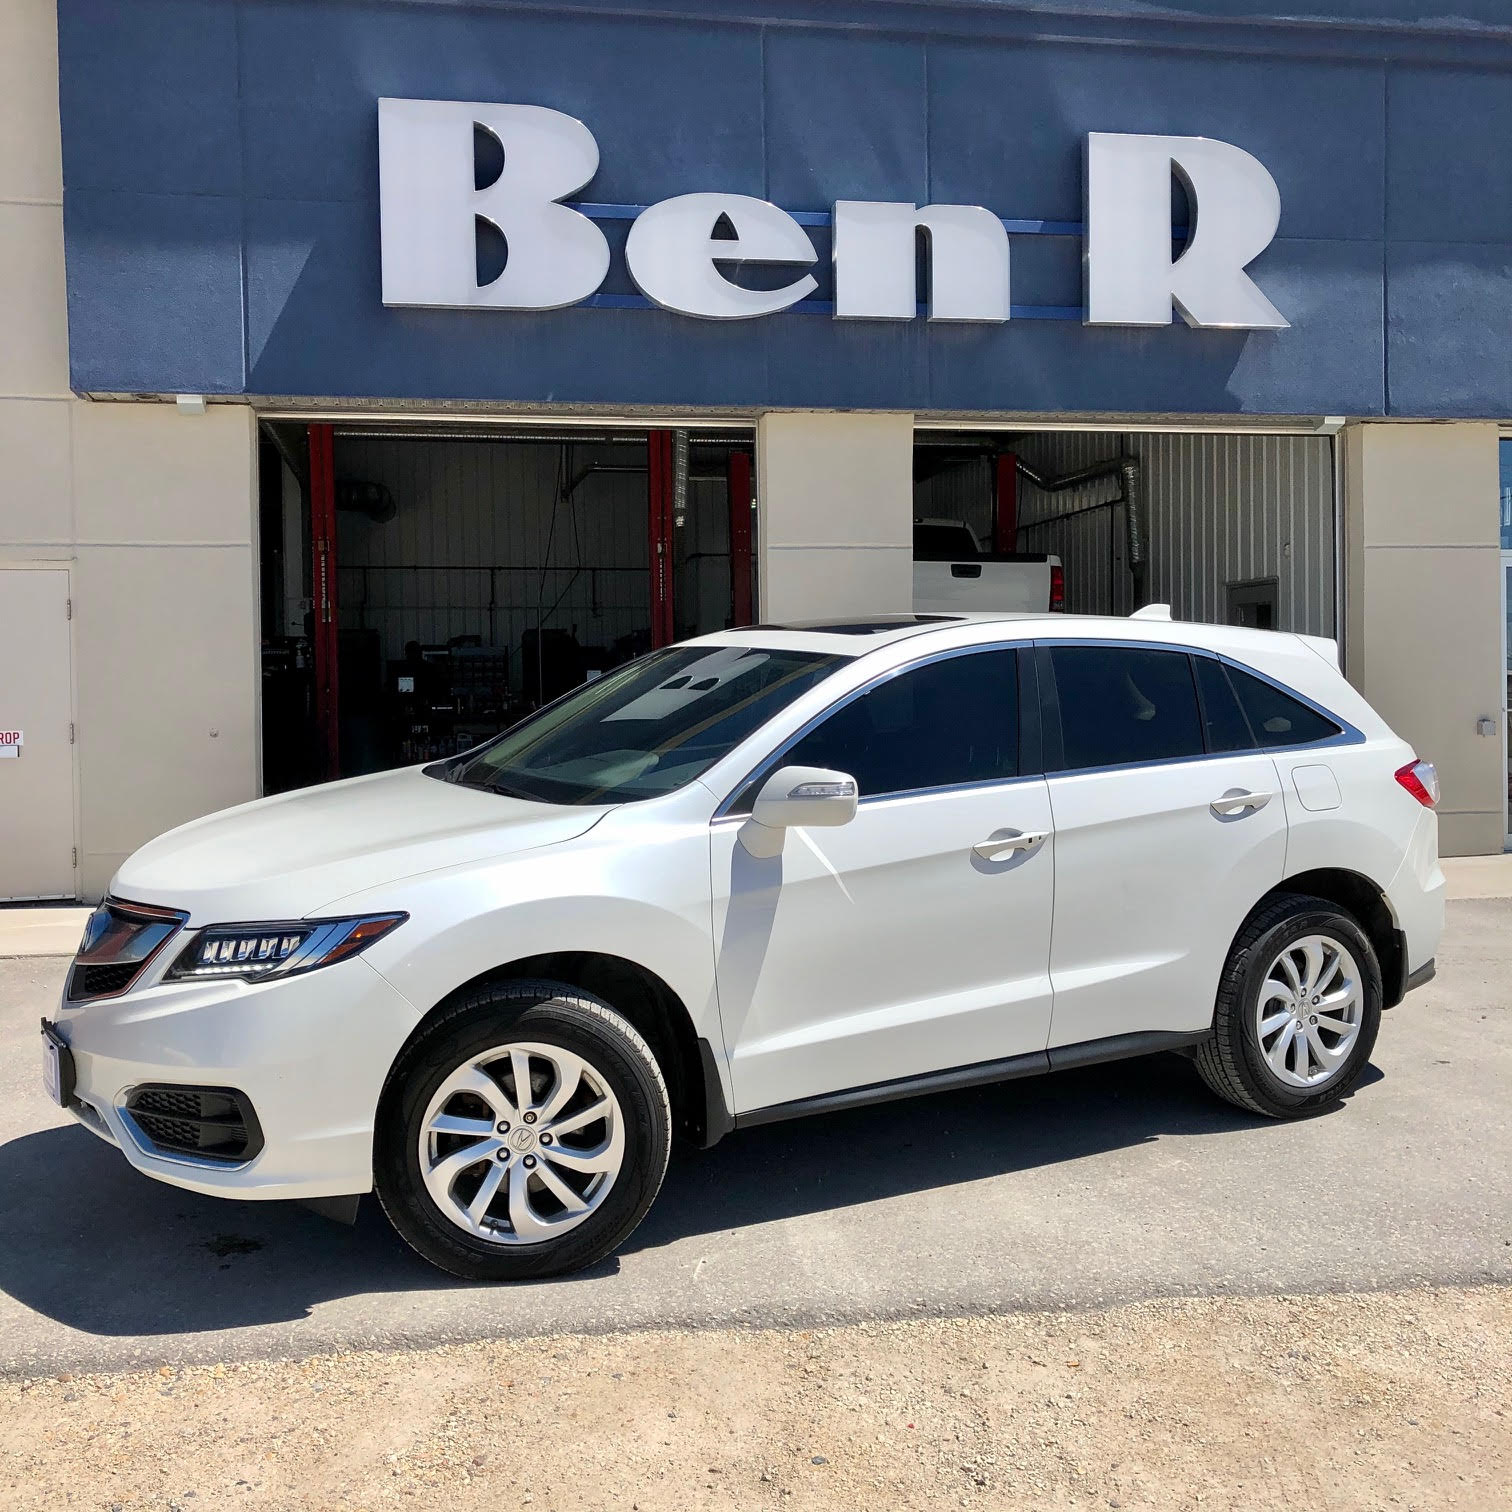 Ben R Auto Sales: Steinbach And